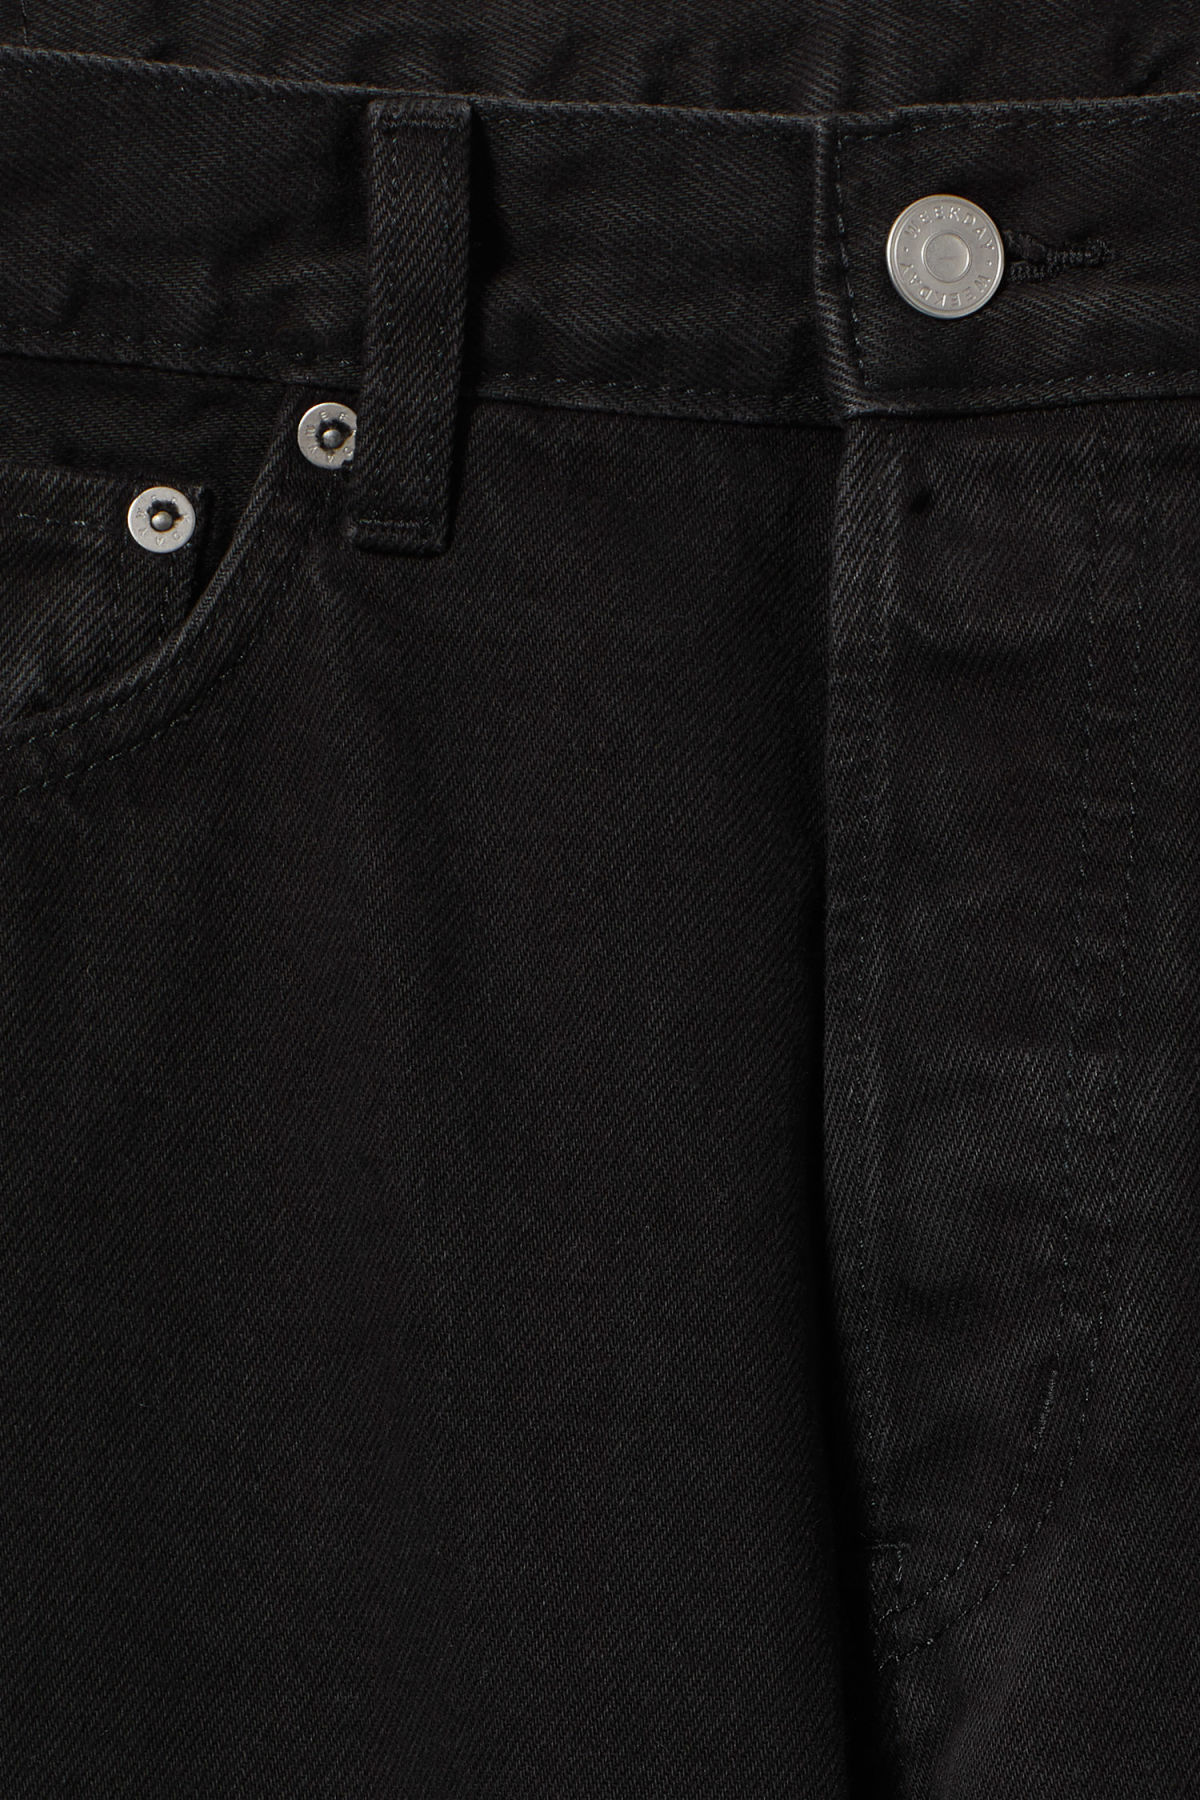 Detailed image of Weekday pine tuned black jeans in black